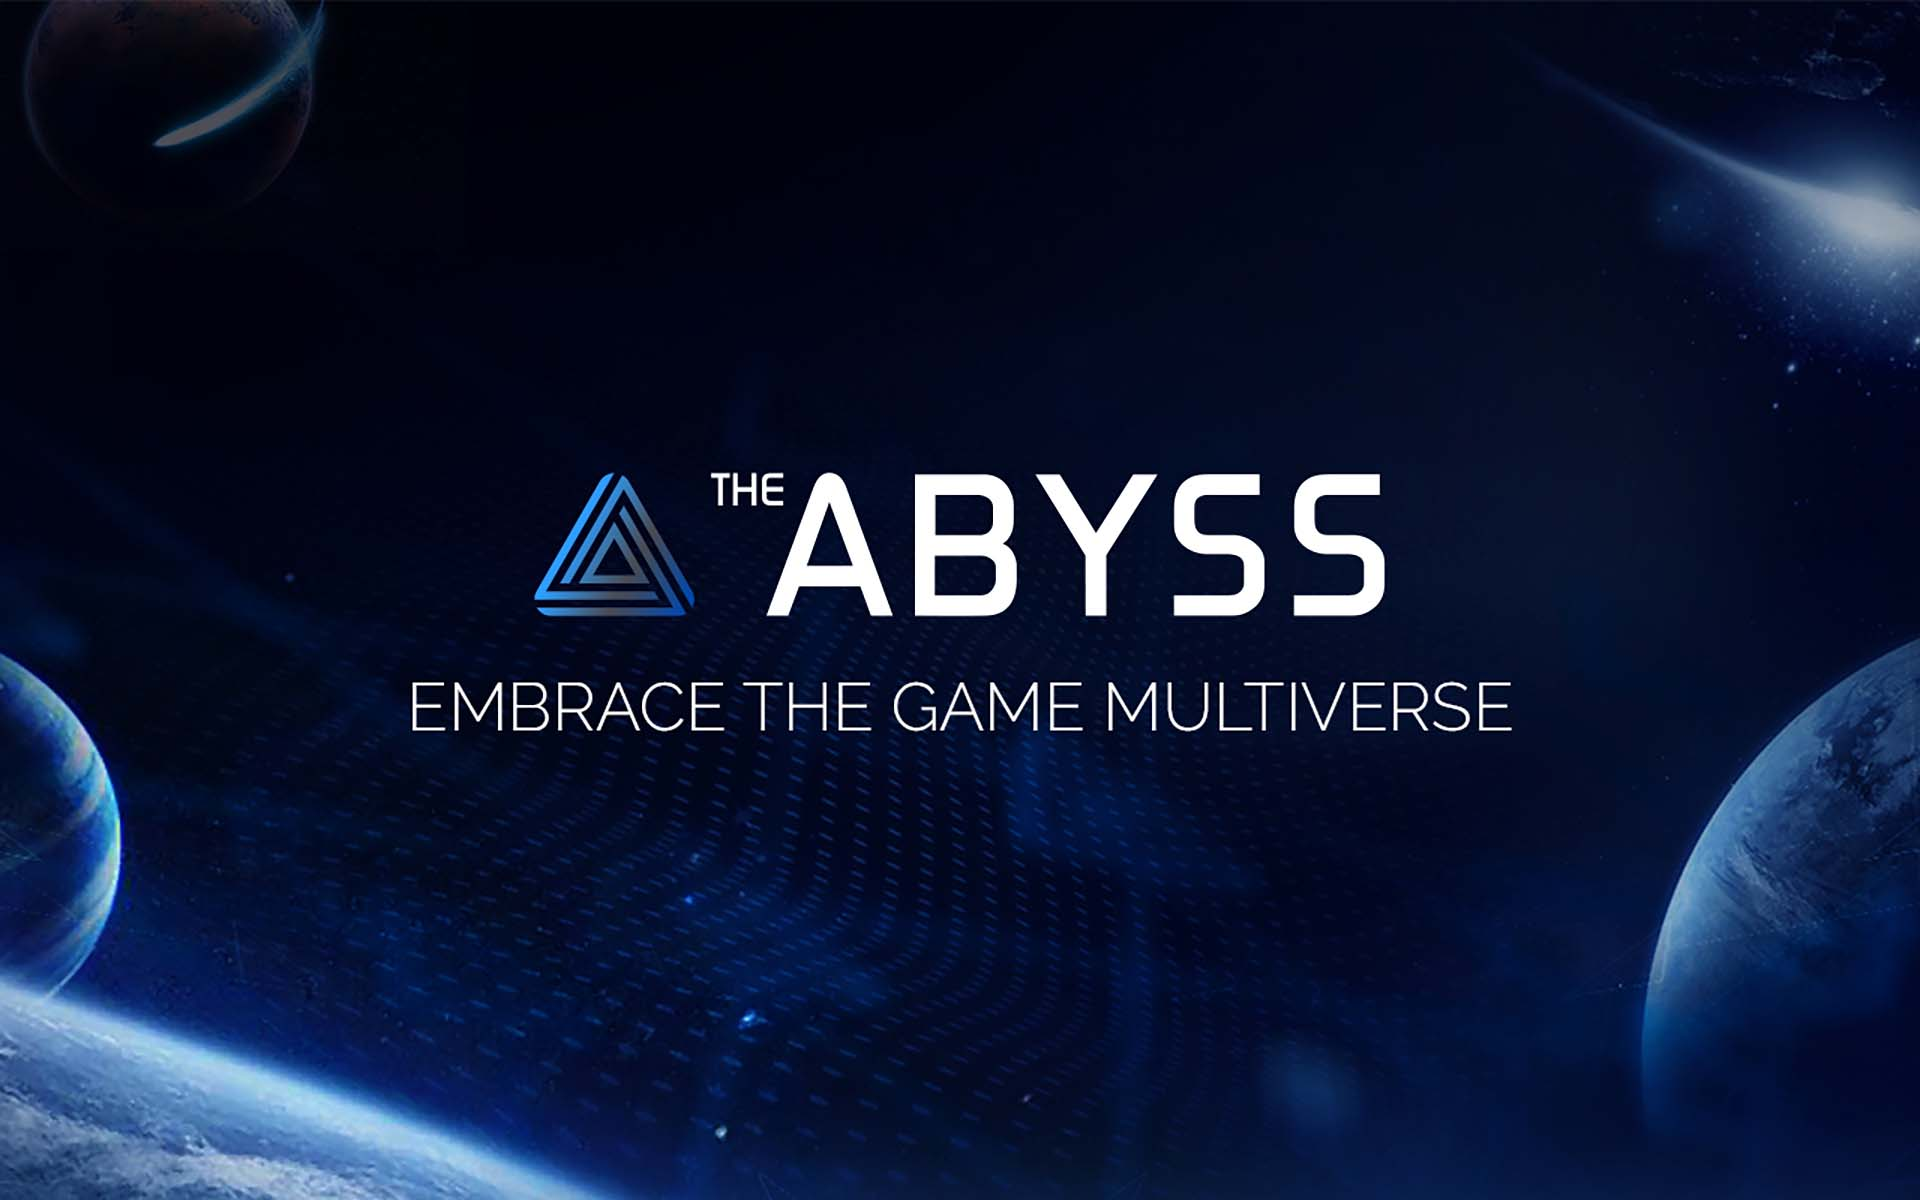 The Abyss Platform to Change Marketing Rules in the Gaming Industry